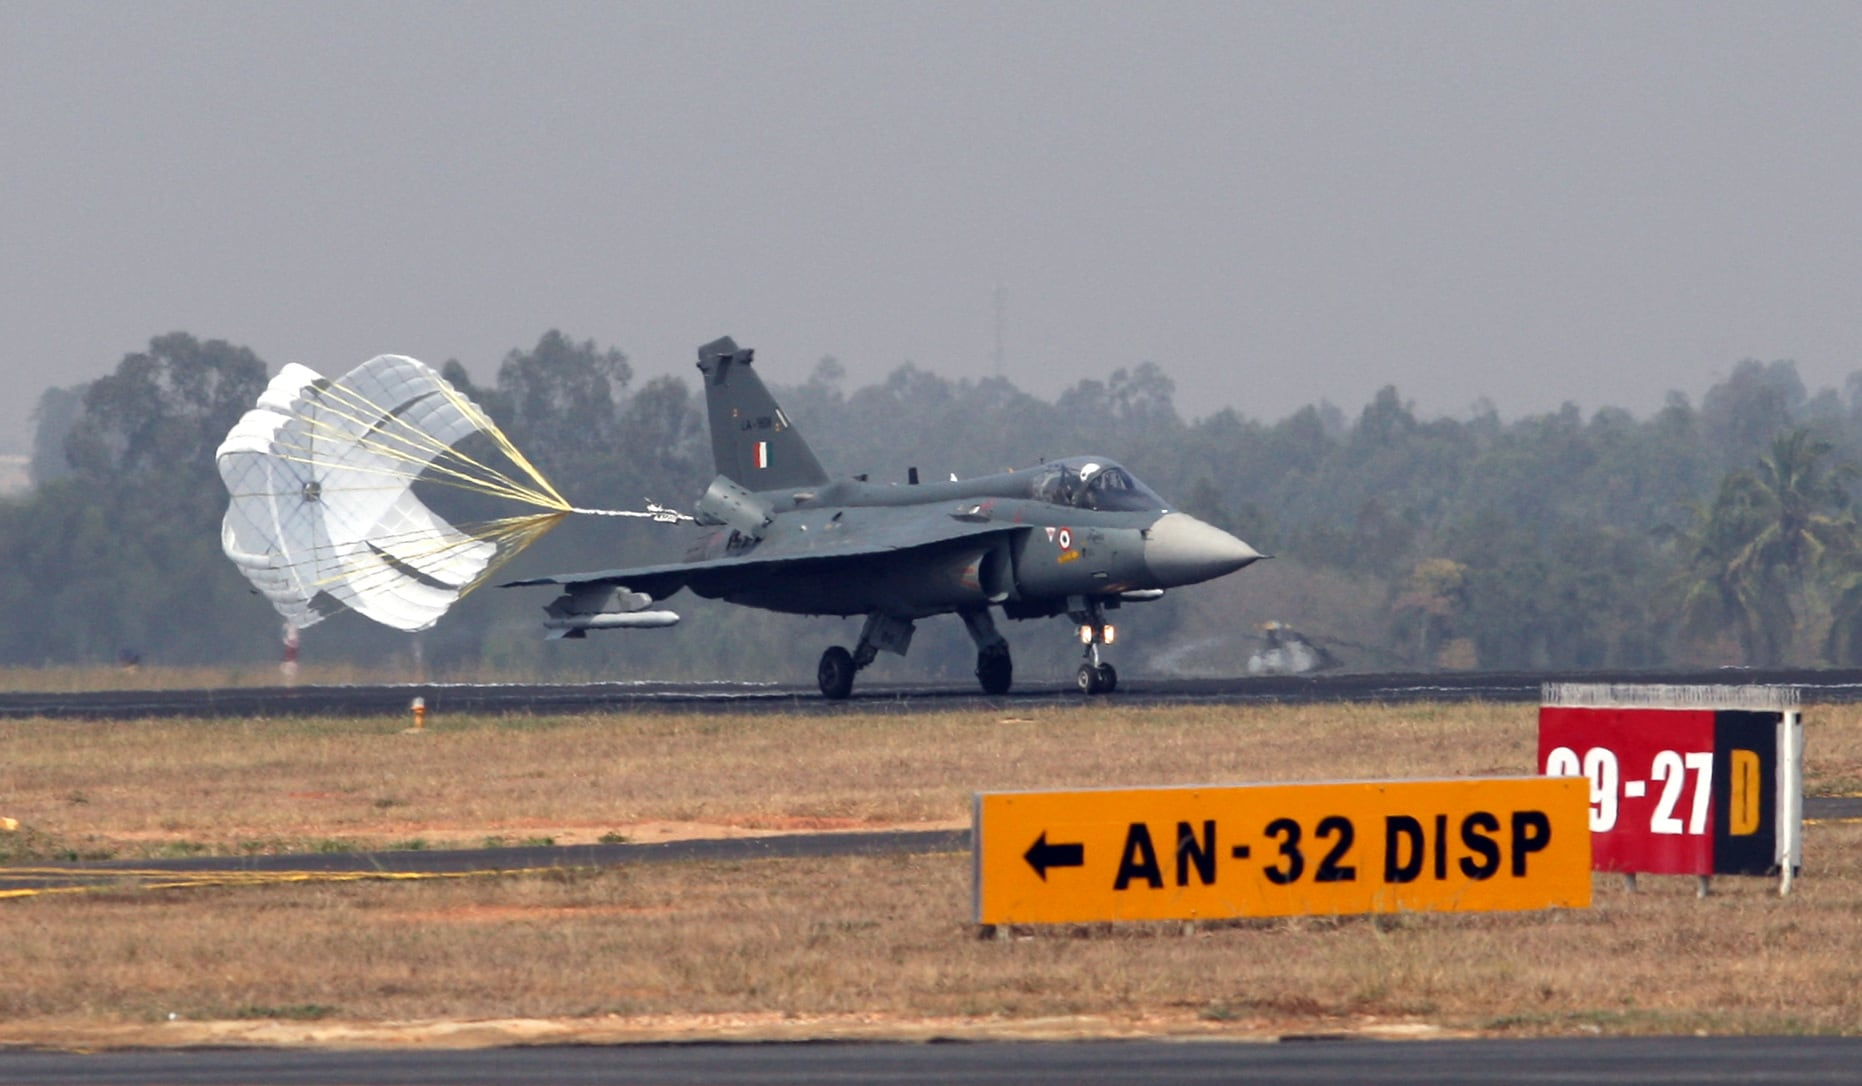 Rafale fighter aircraft is seen during the rehearsal of 12th edition of AERO India 2019, at Yelahanka Air Base, in Bengaluru.